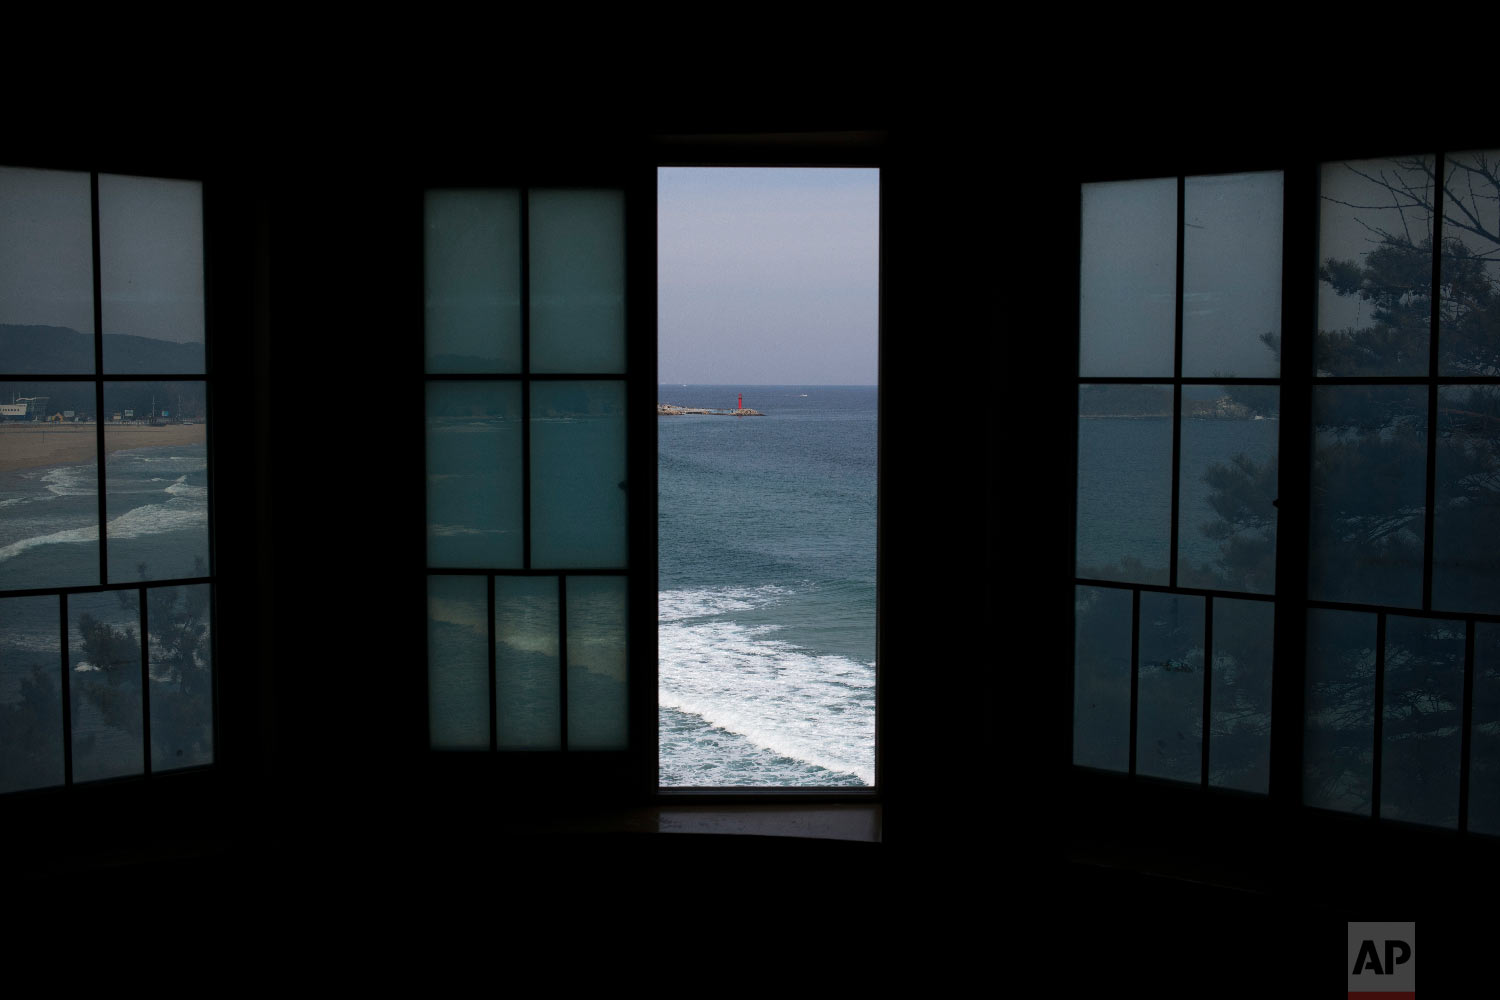 A window is left open in a room overlooking Hwajinpo Beach at the villa known as Hwajinpo Castle, once a holiday home for late North Korea founder Kim Il Sung, at Hwajinpo Beach, South Korea, Monday, Feb. 19, 2018. (AP Photo/Jae C. Hong)